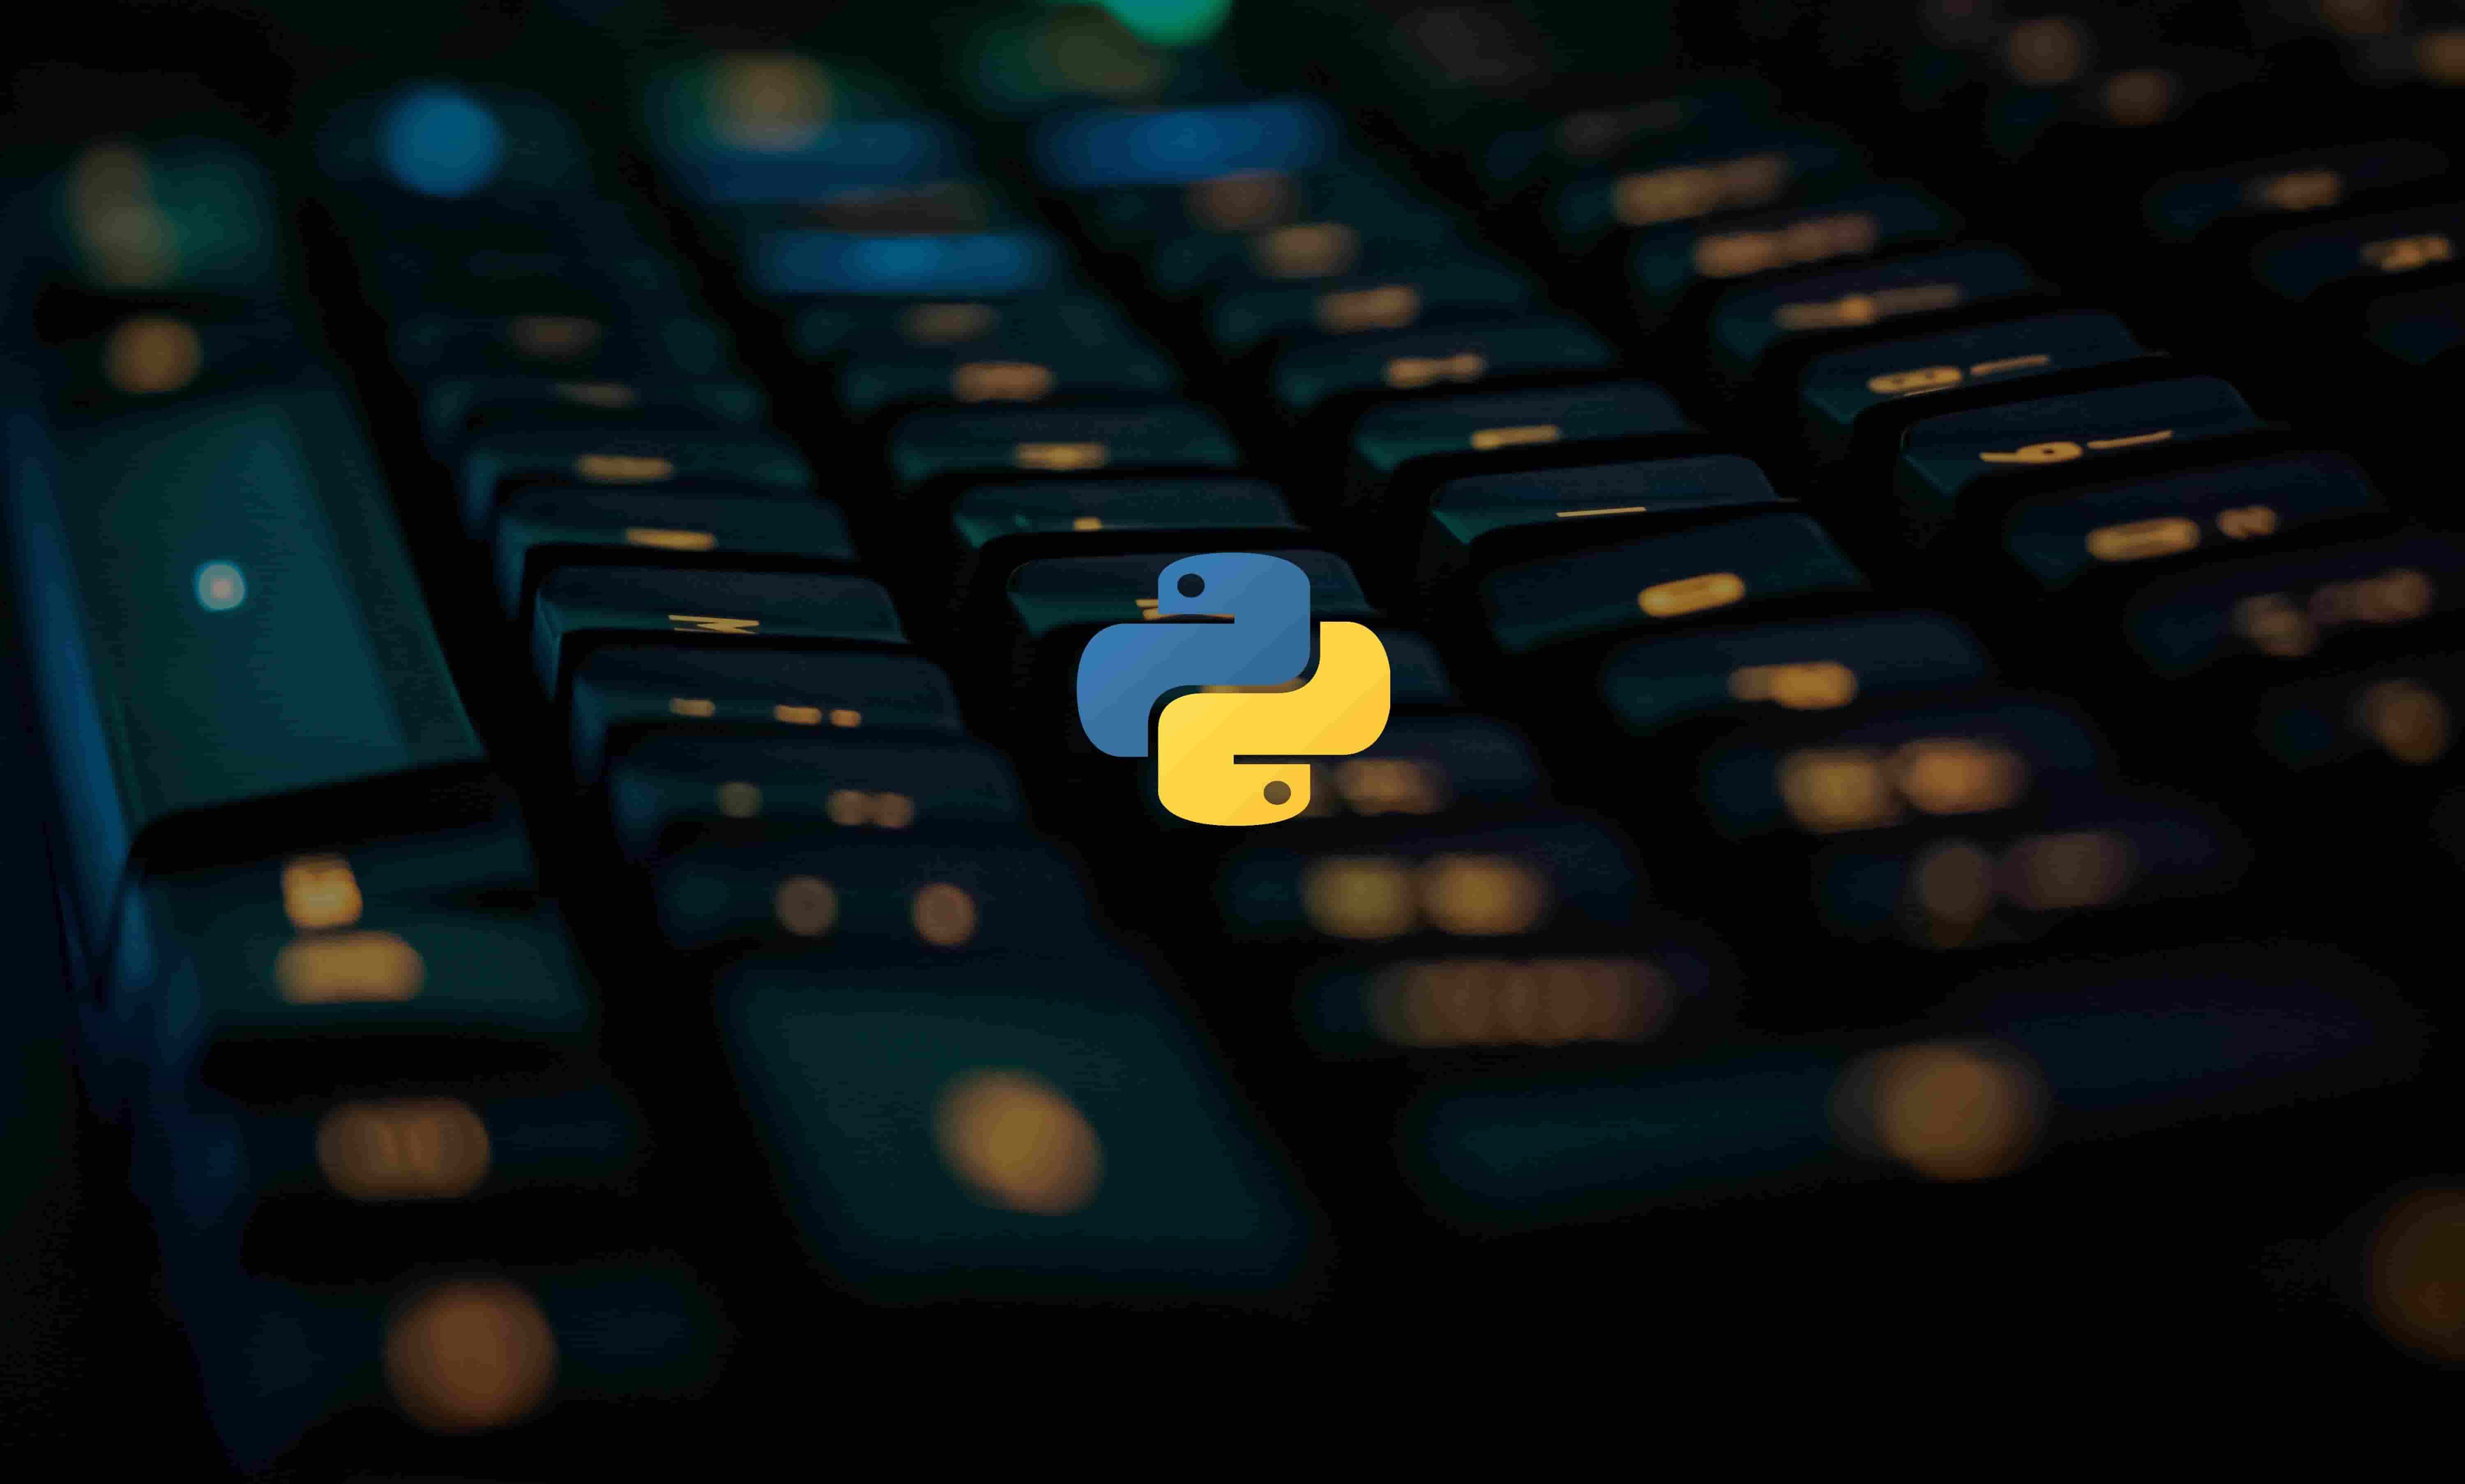 How to Control your Keyboard in Python